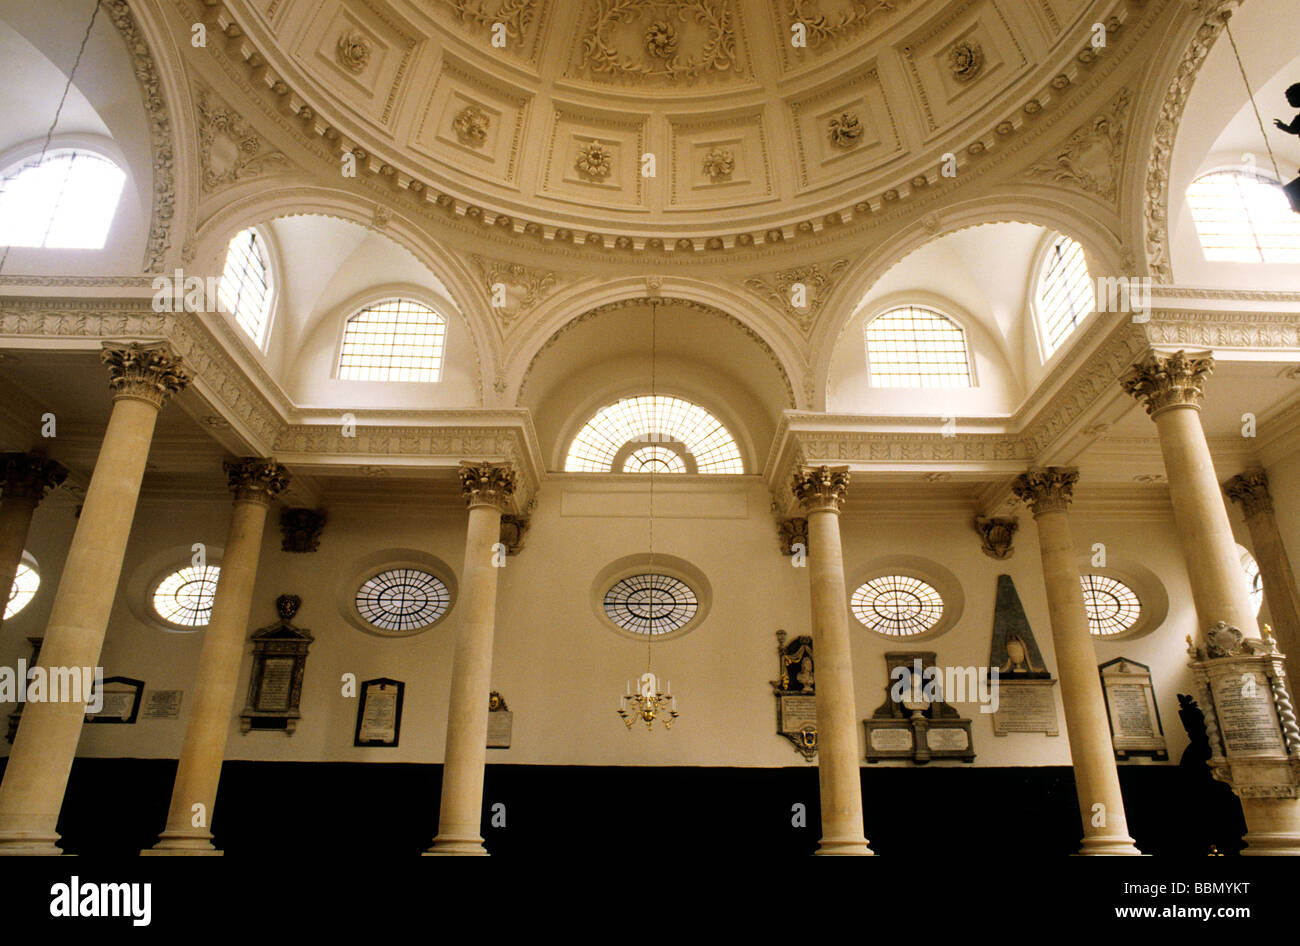 St Stephen Walbrook Church Interior City Of London Dome 17th Centrury  English Architecture, Sir Christopher